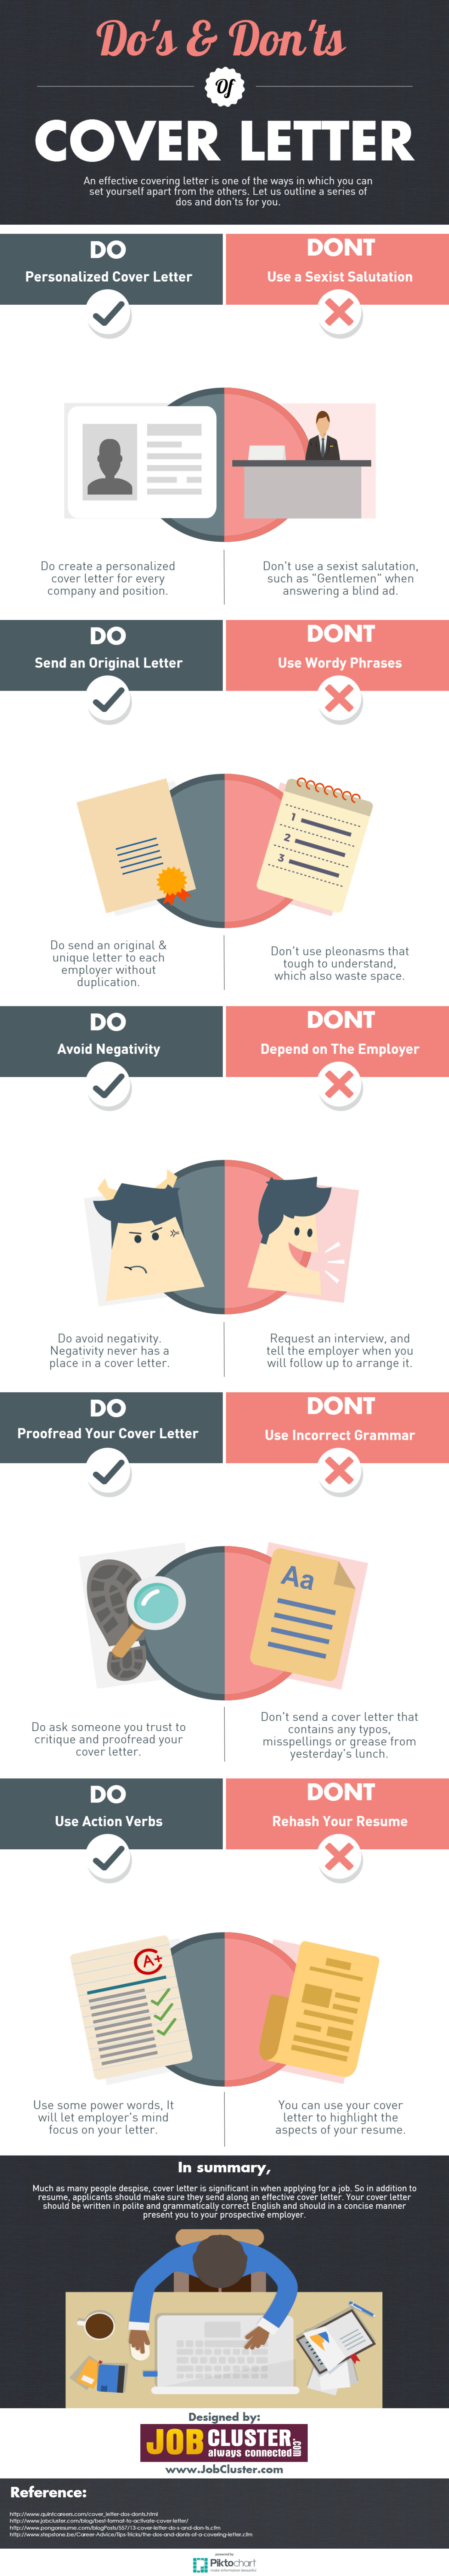 dos and donts of cover letter infographic - Cover Letter Critique